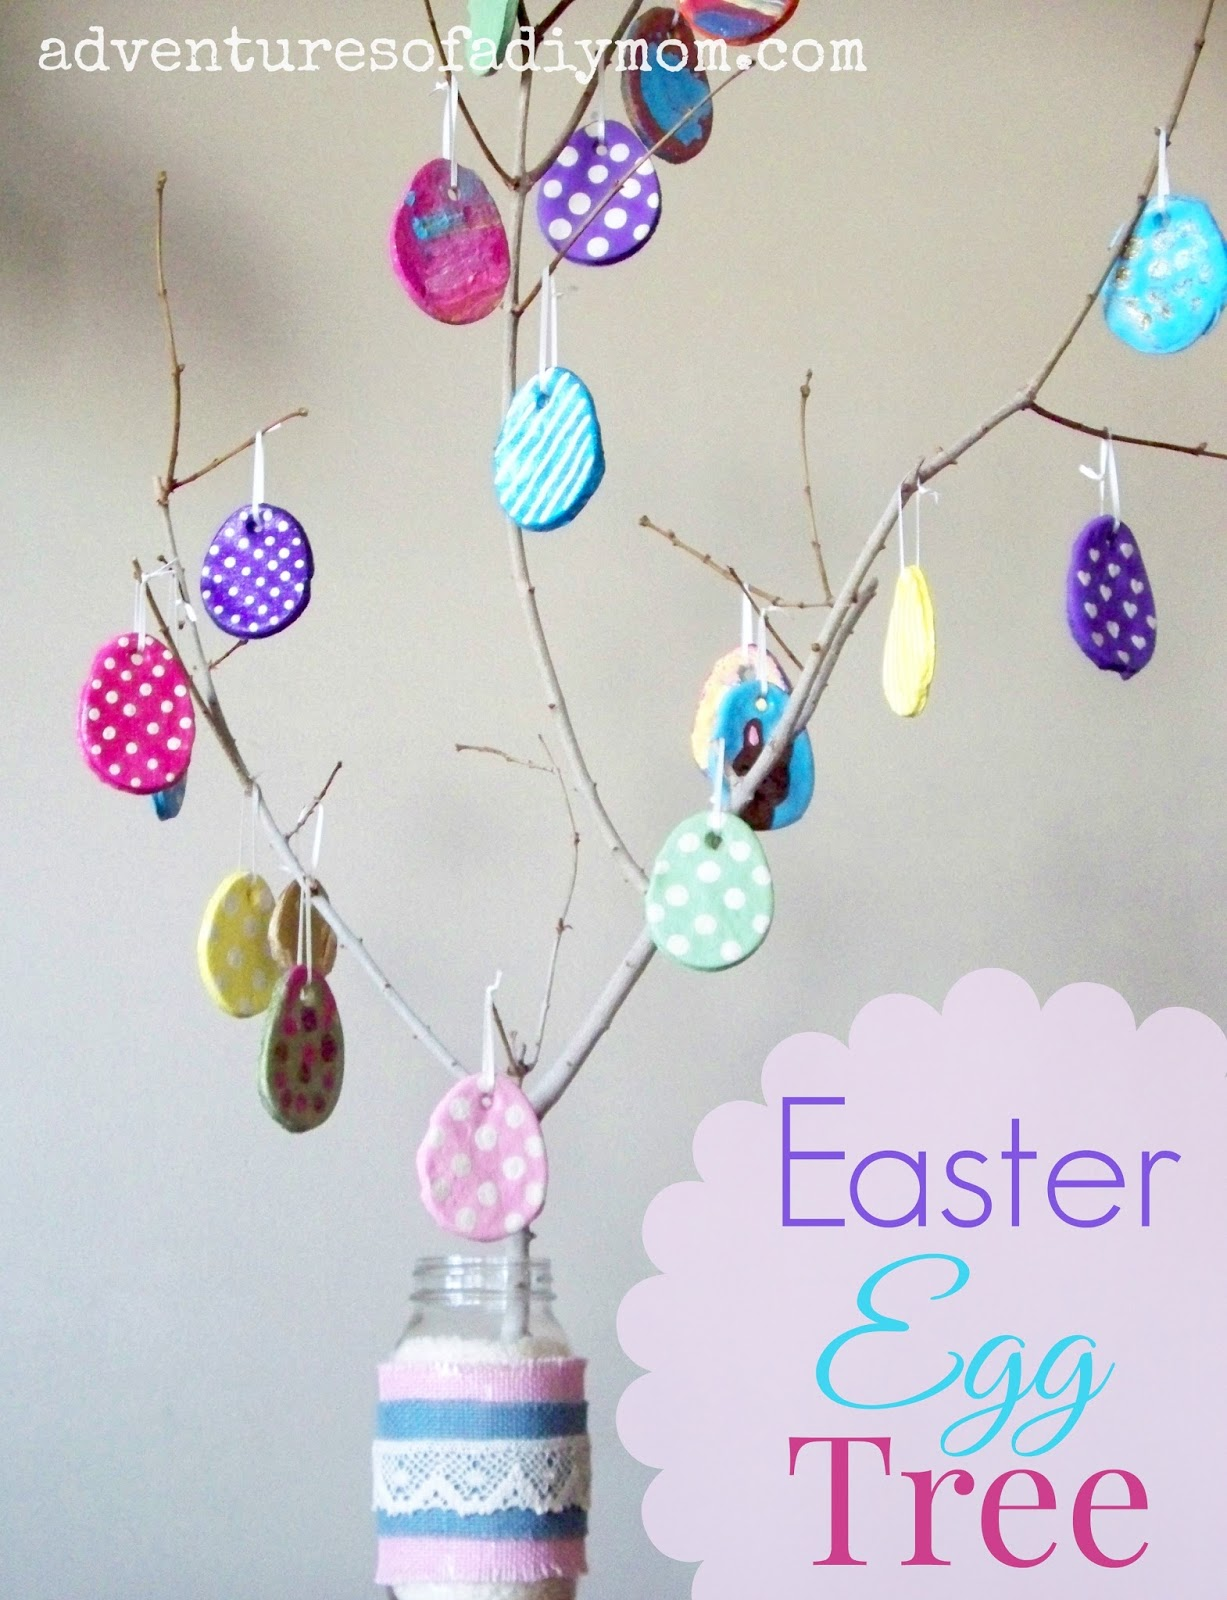 Salt Dough Easter Egg Tree Adventures Of A Diy Mom: how to make an easter egg tree